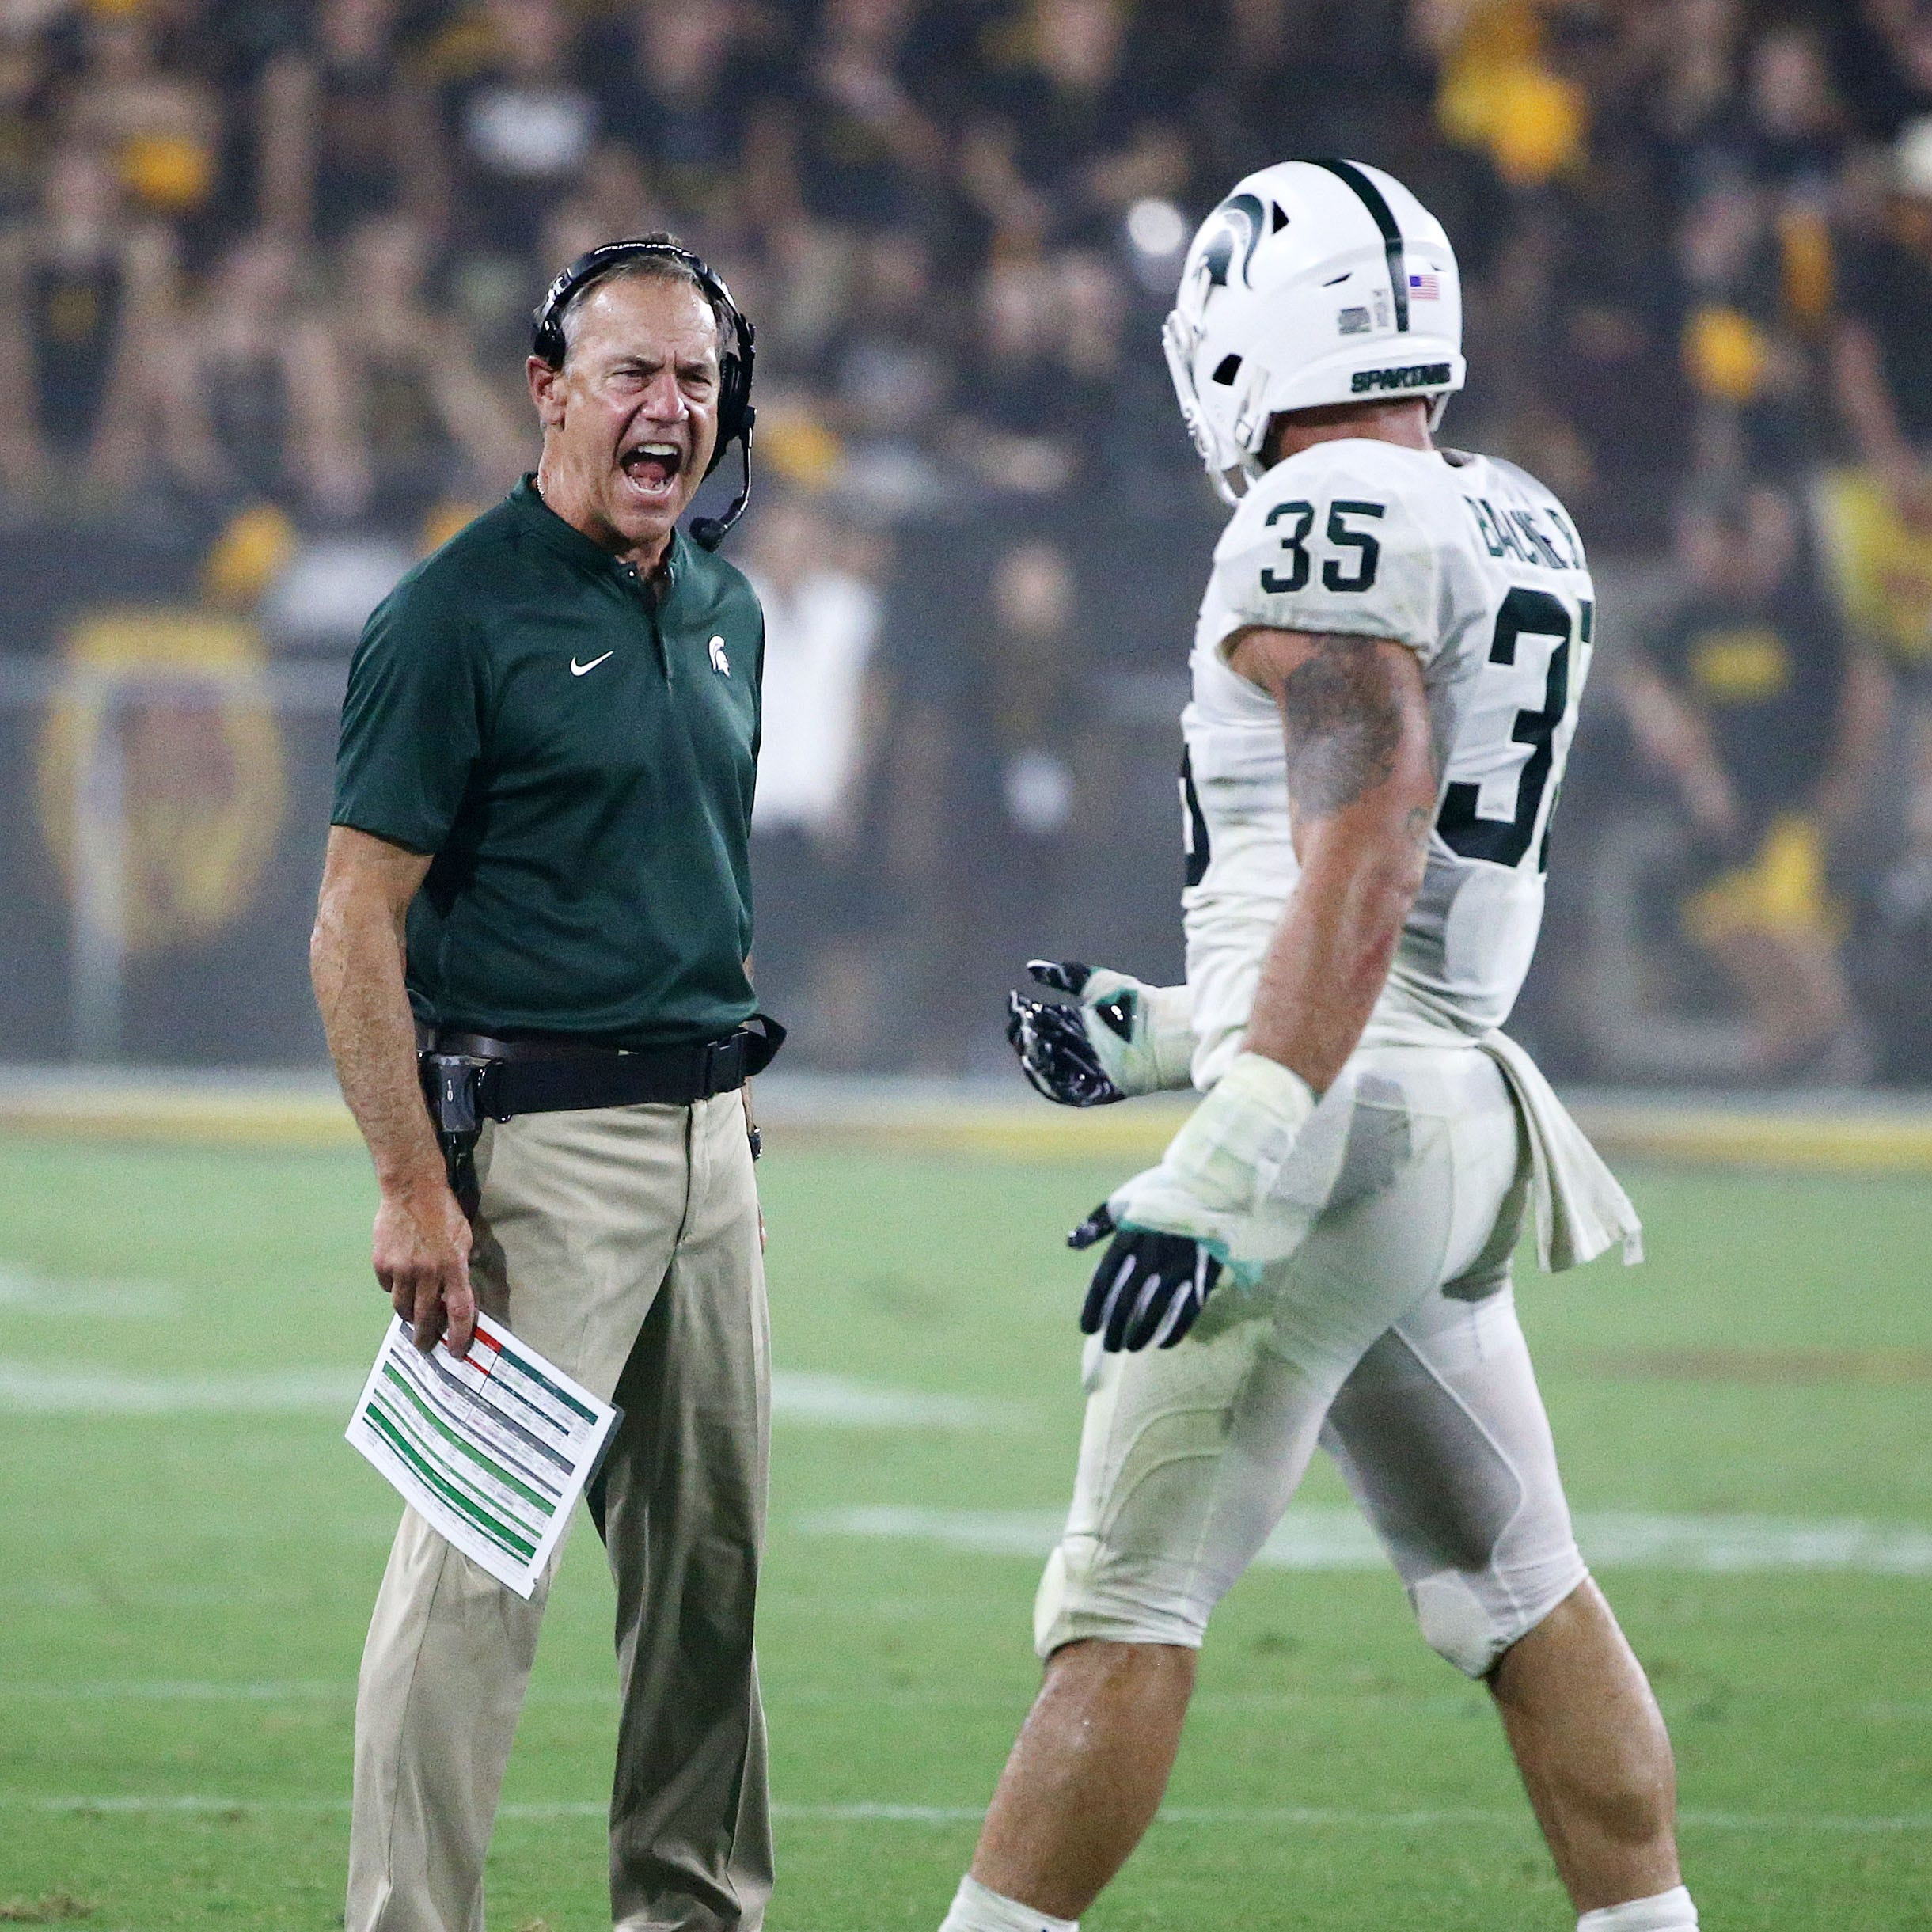 Michigan State doomed by mental cramps in avoidable loss to Arizona State